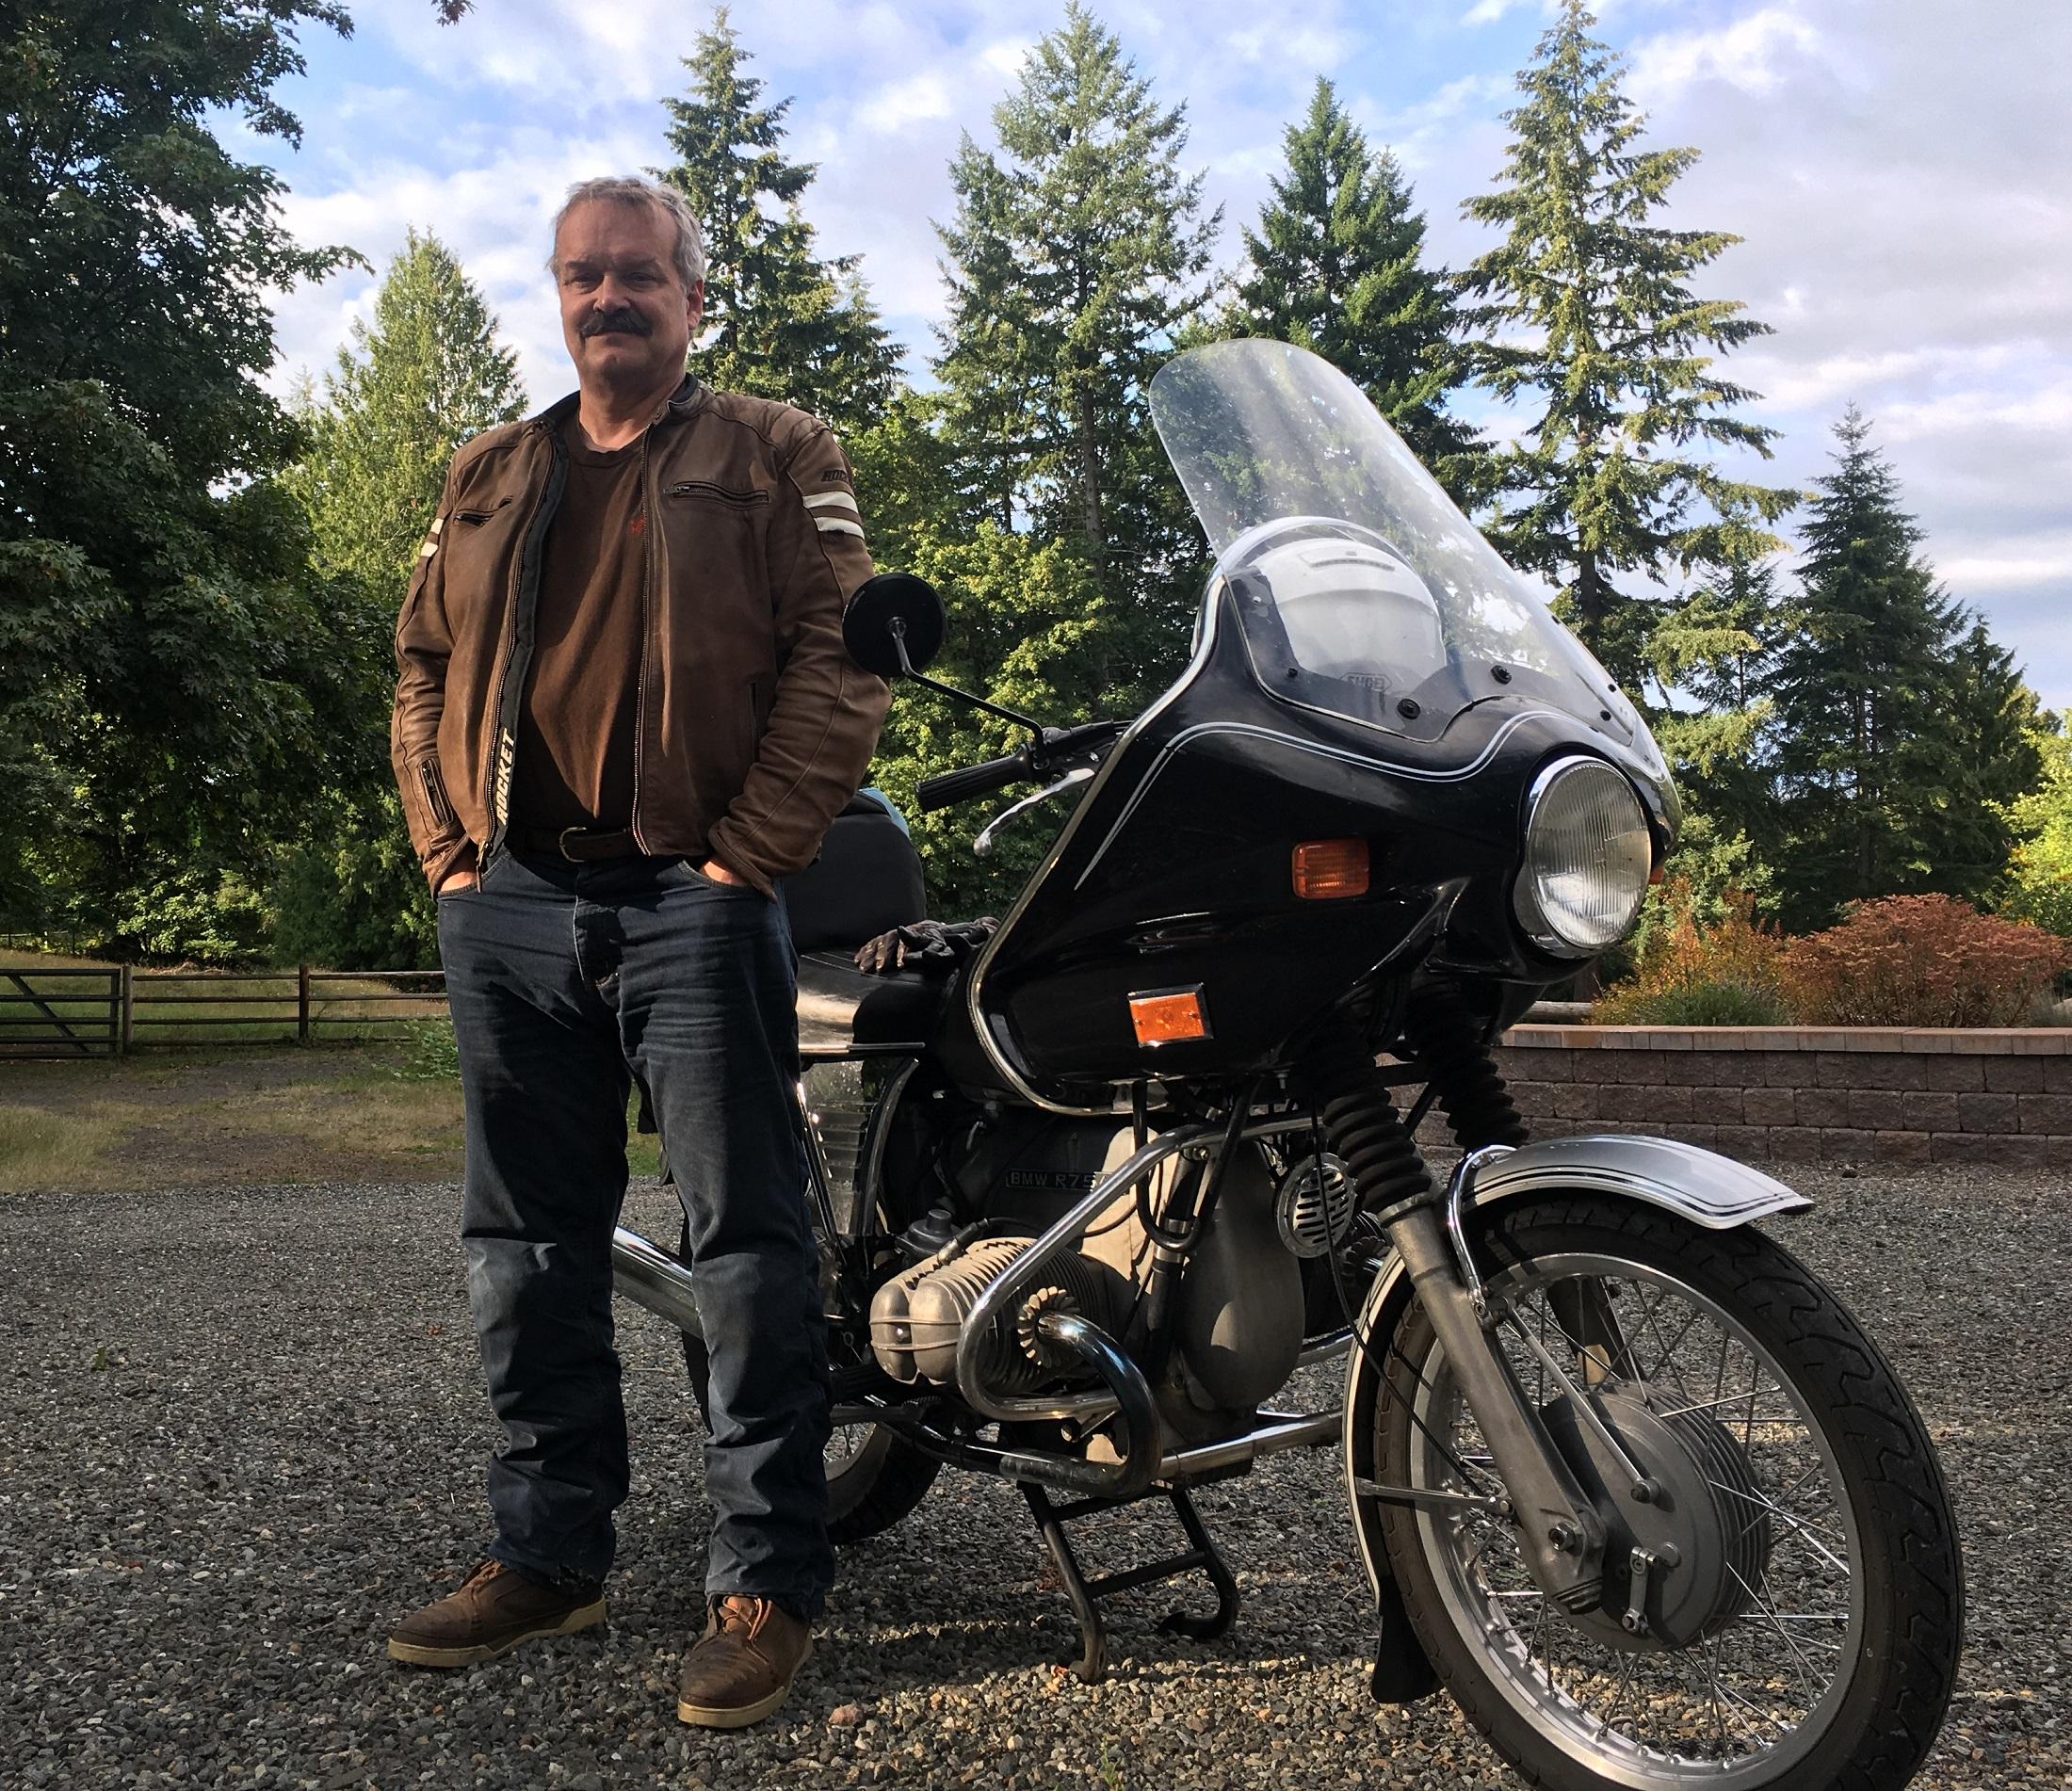 Vintage fly and ride: 1,300 miles on a 43-year-old bike